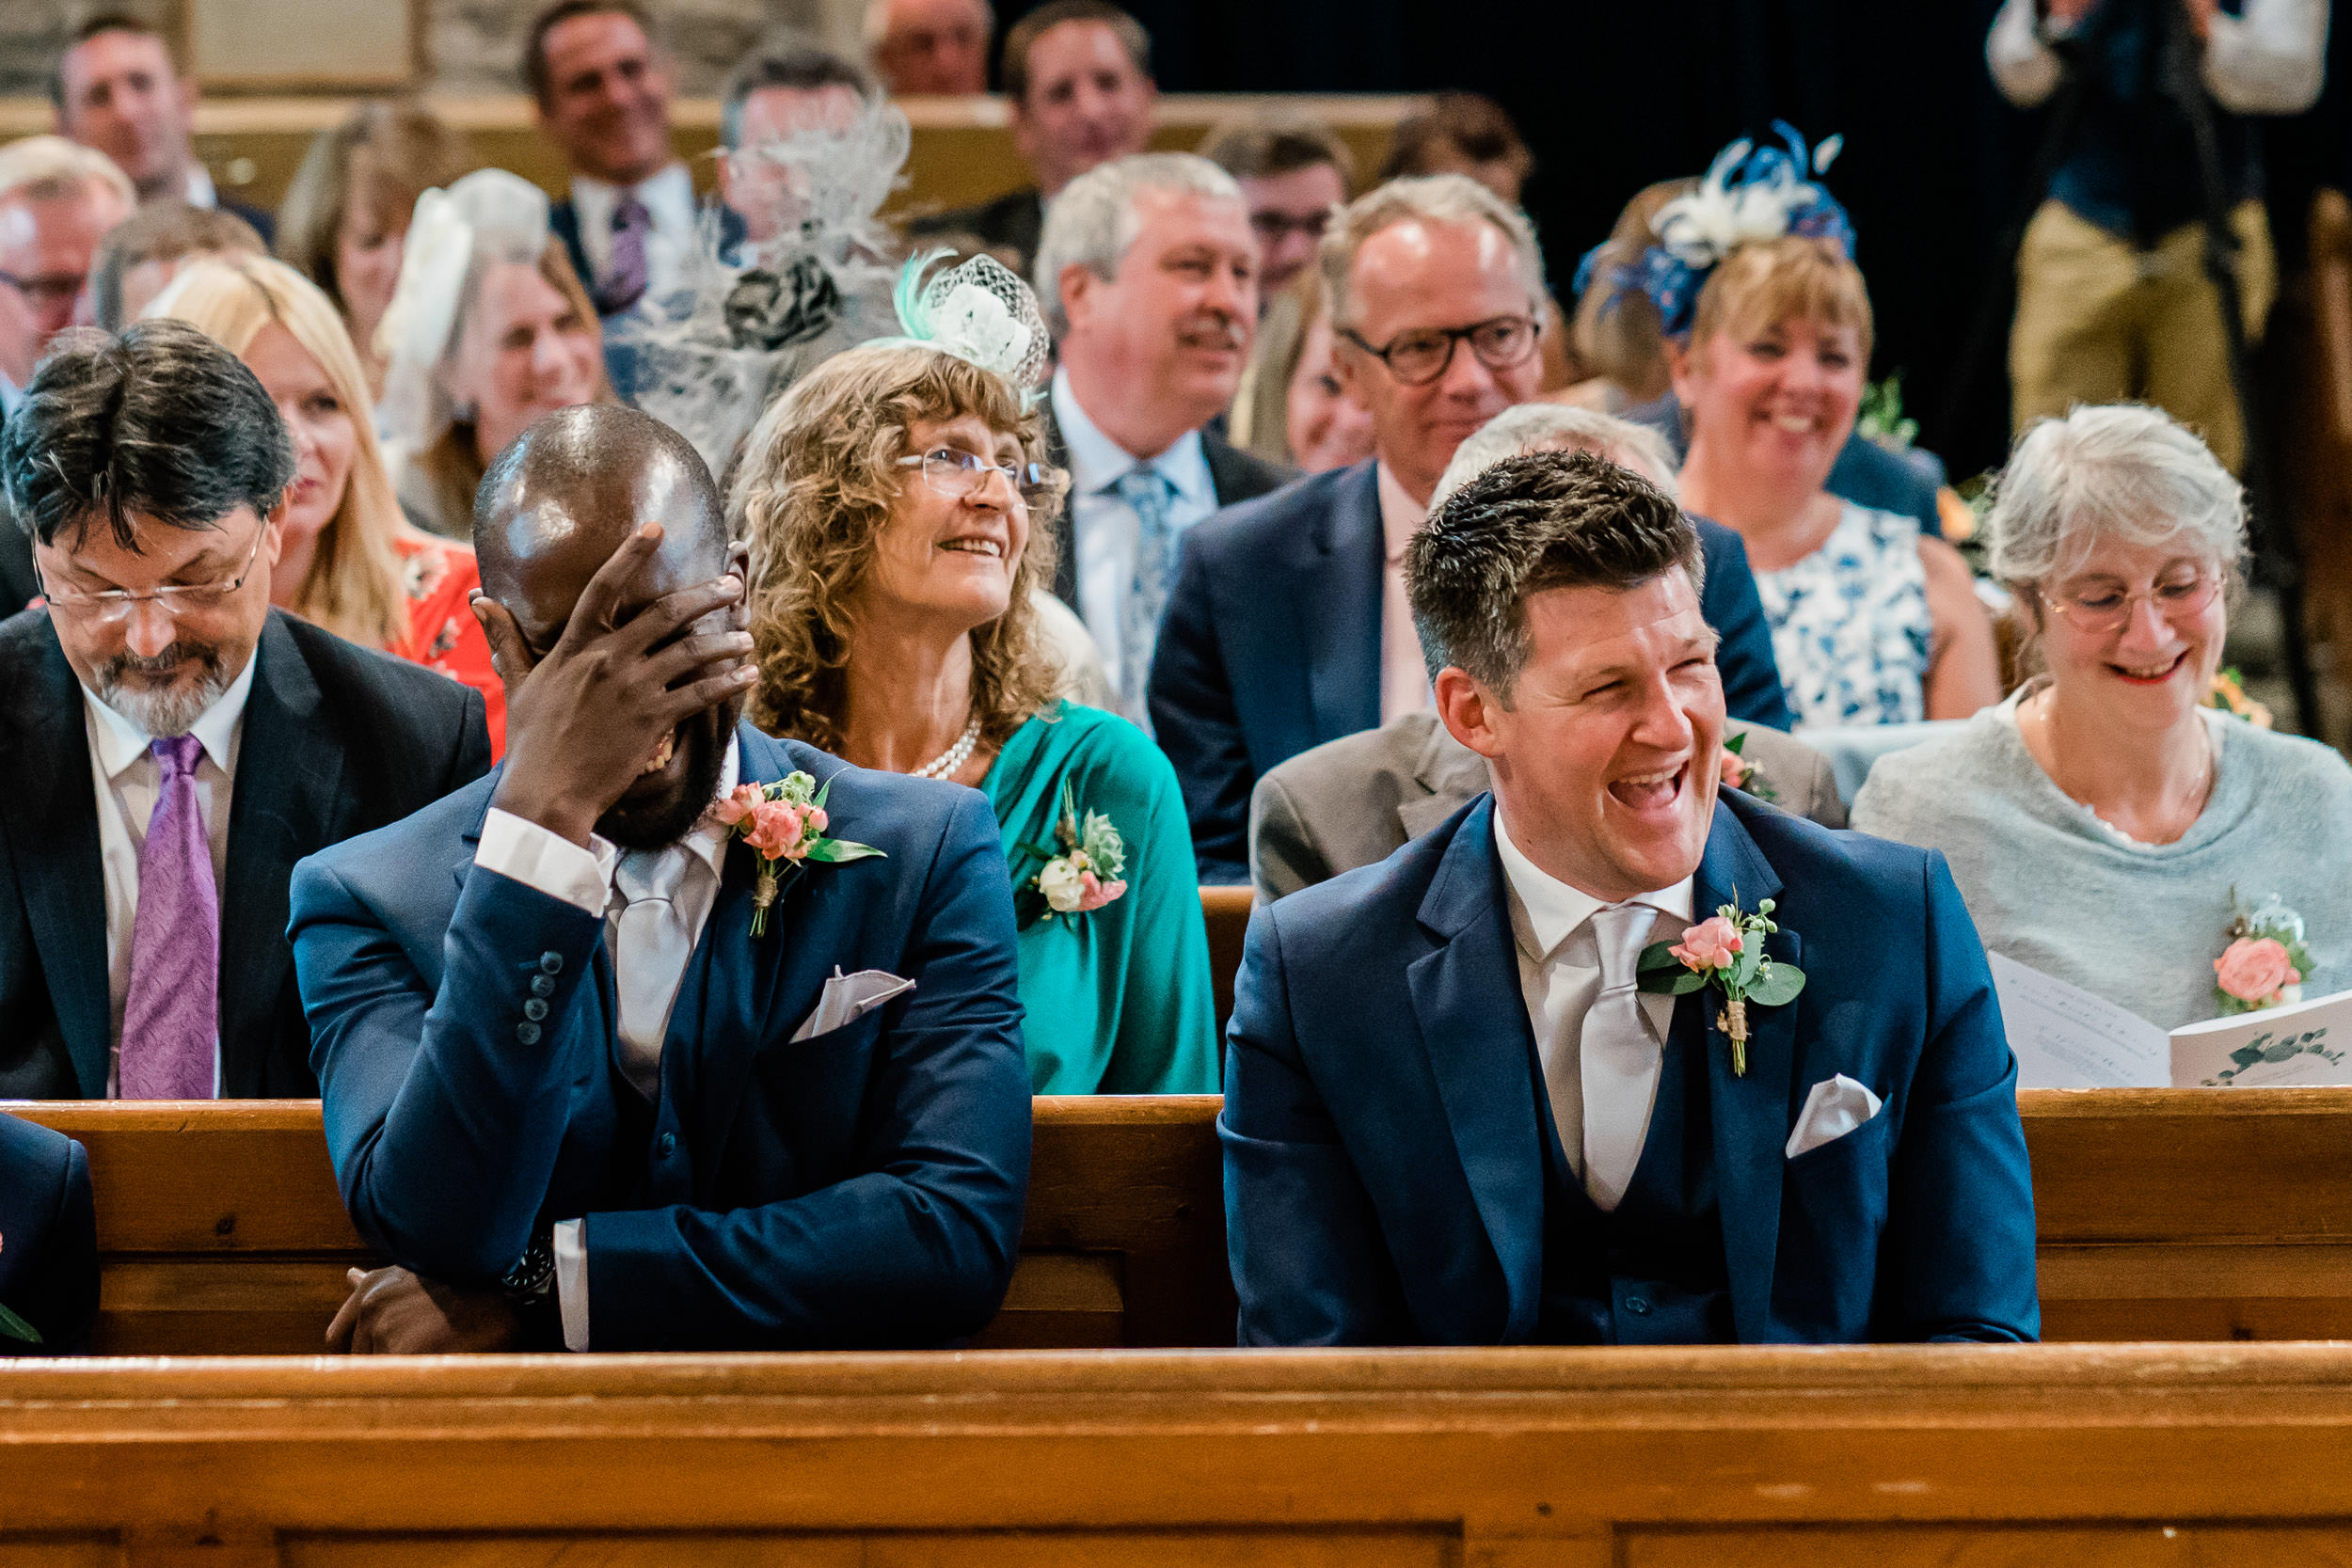 Orchardleigh Estate Wedding - Best Men laughing during the Wedding Ceremony